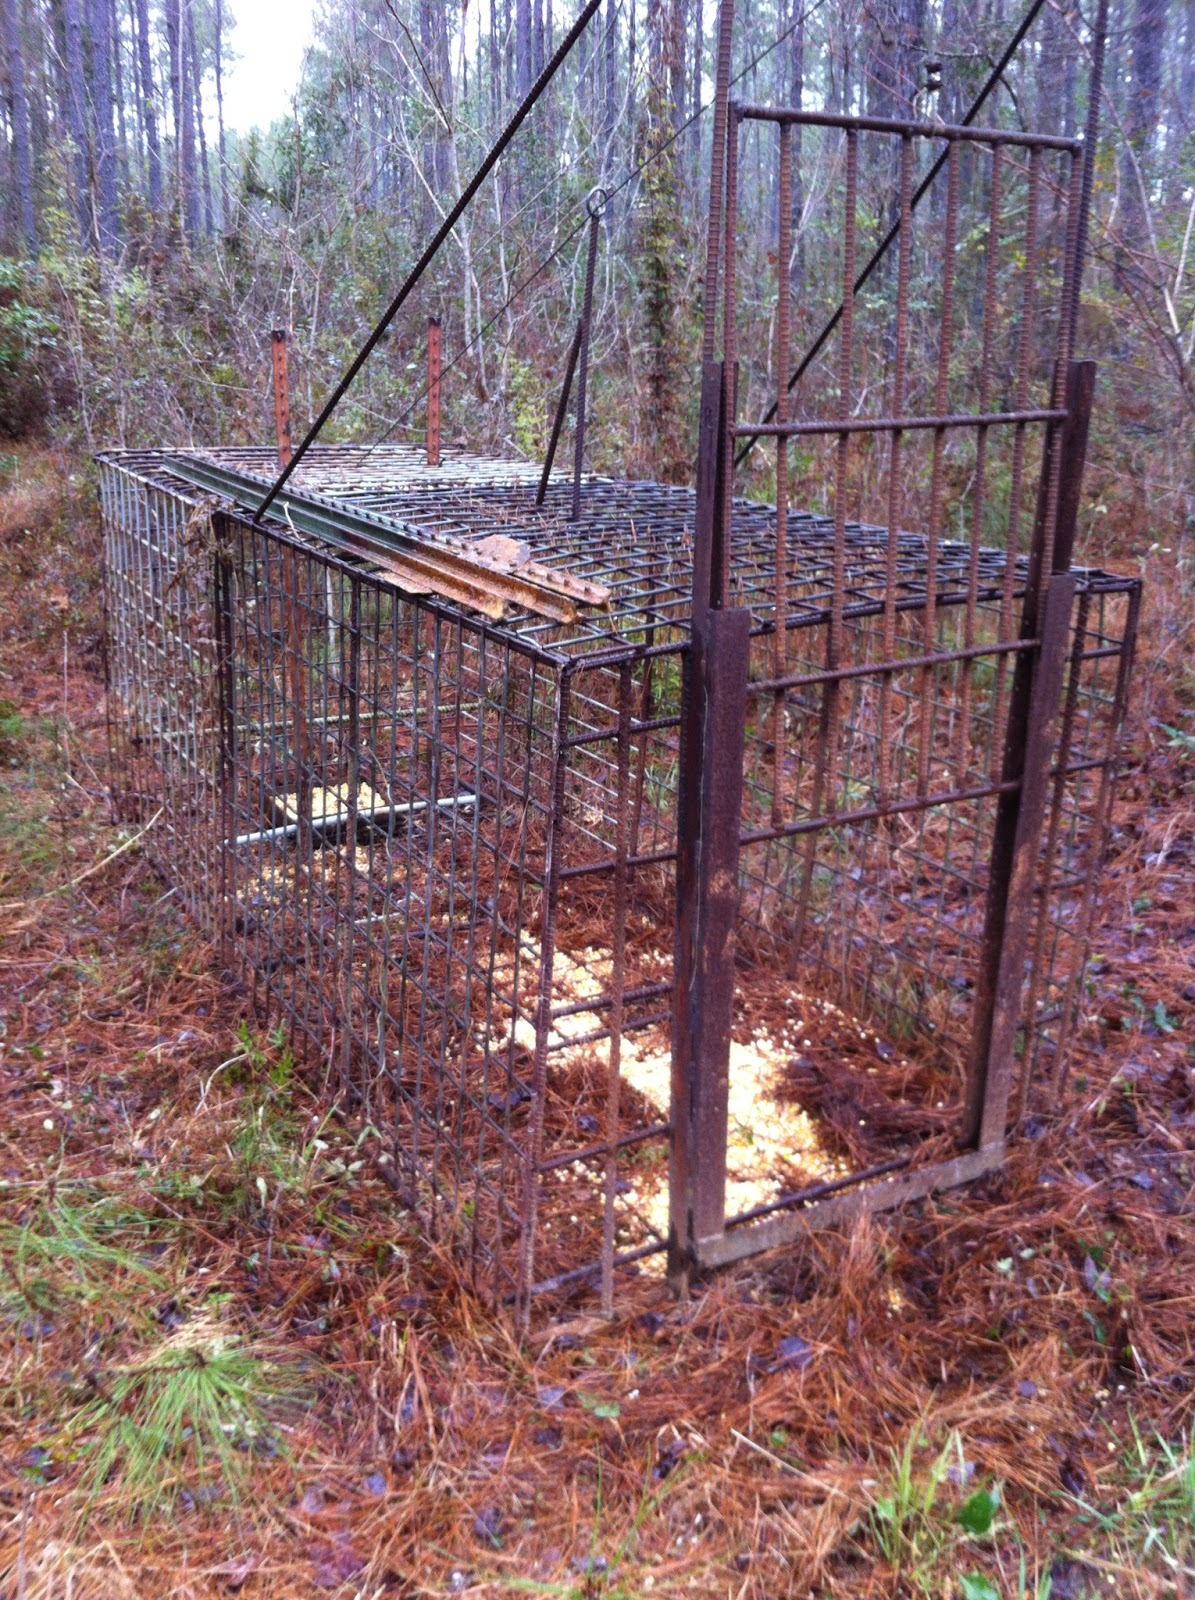 I want to build a hog trap advice please. - Georgia Outdoor News Forum